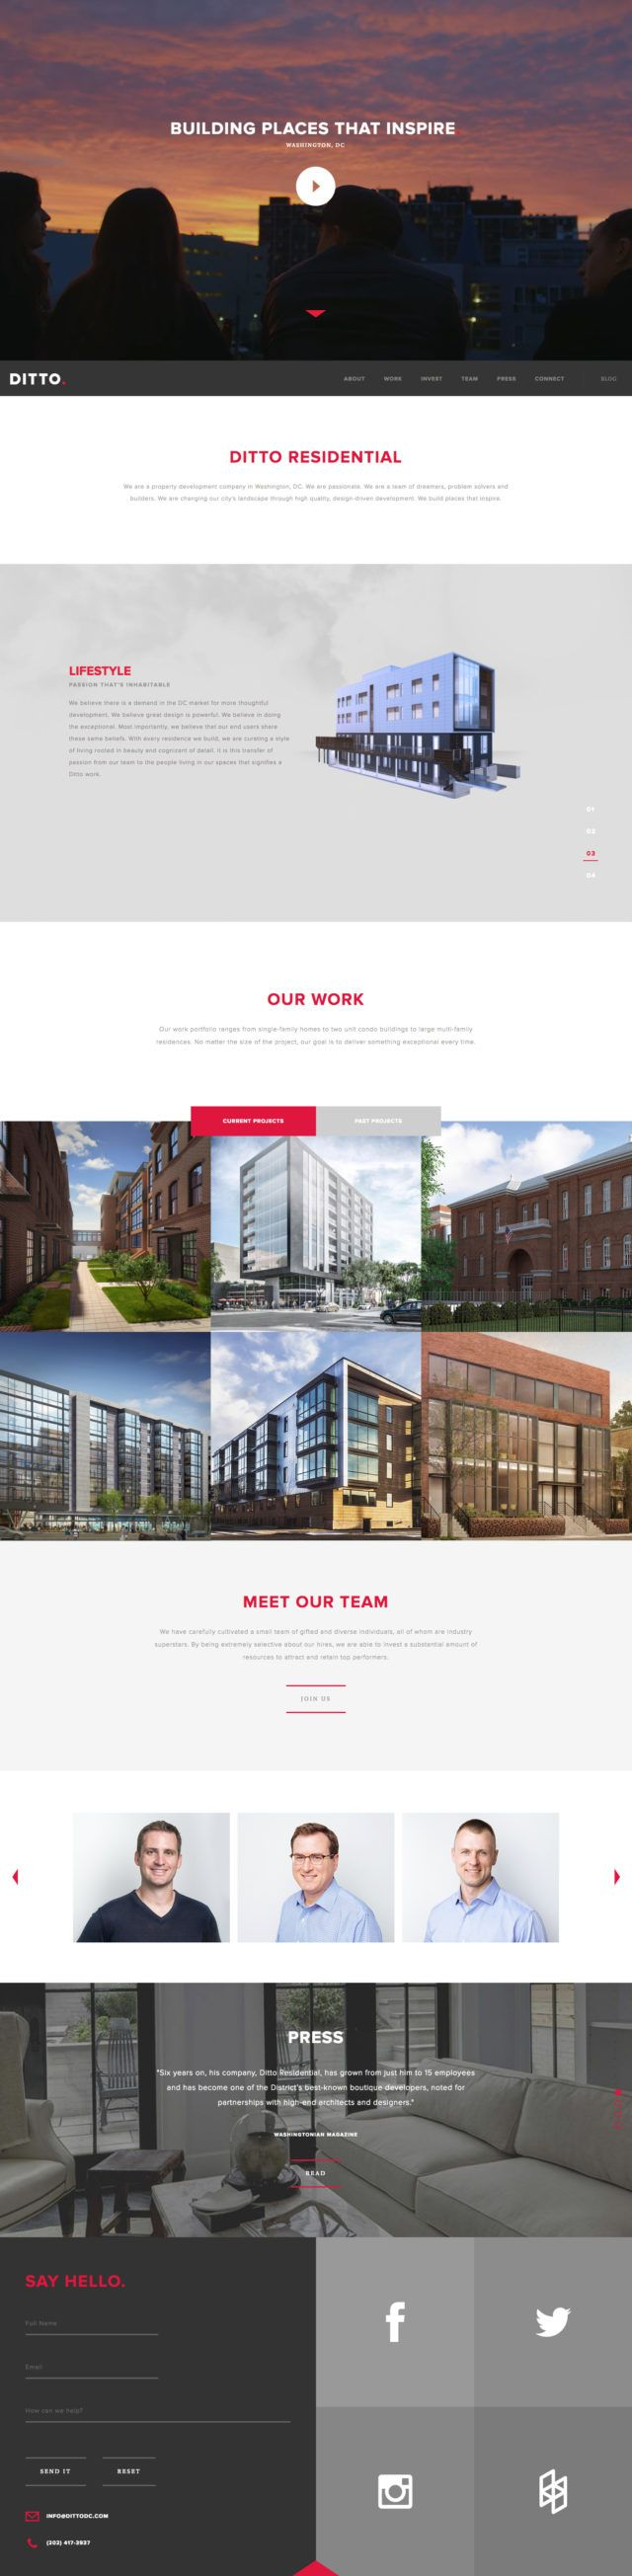 Ditto Construction Firm Website Design 2018 #constructionwebsites #contractorwebsite #contractors #website